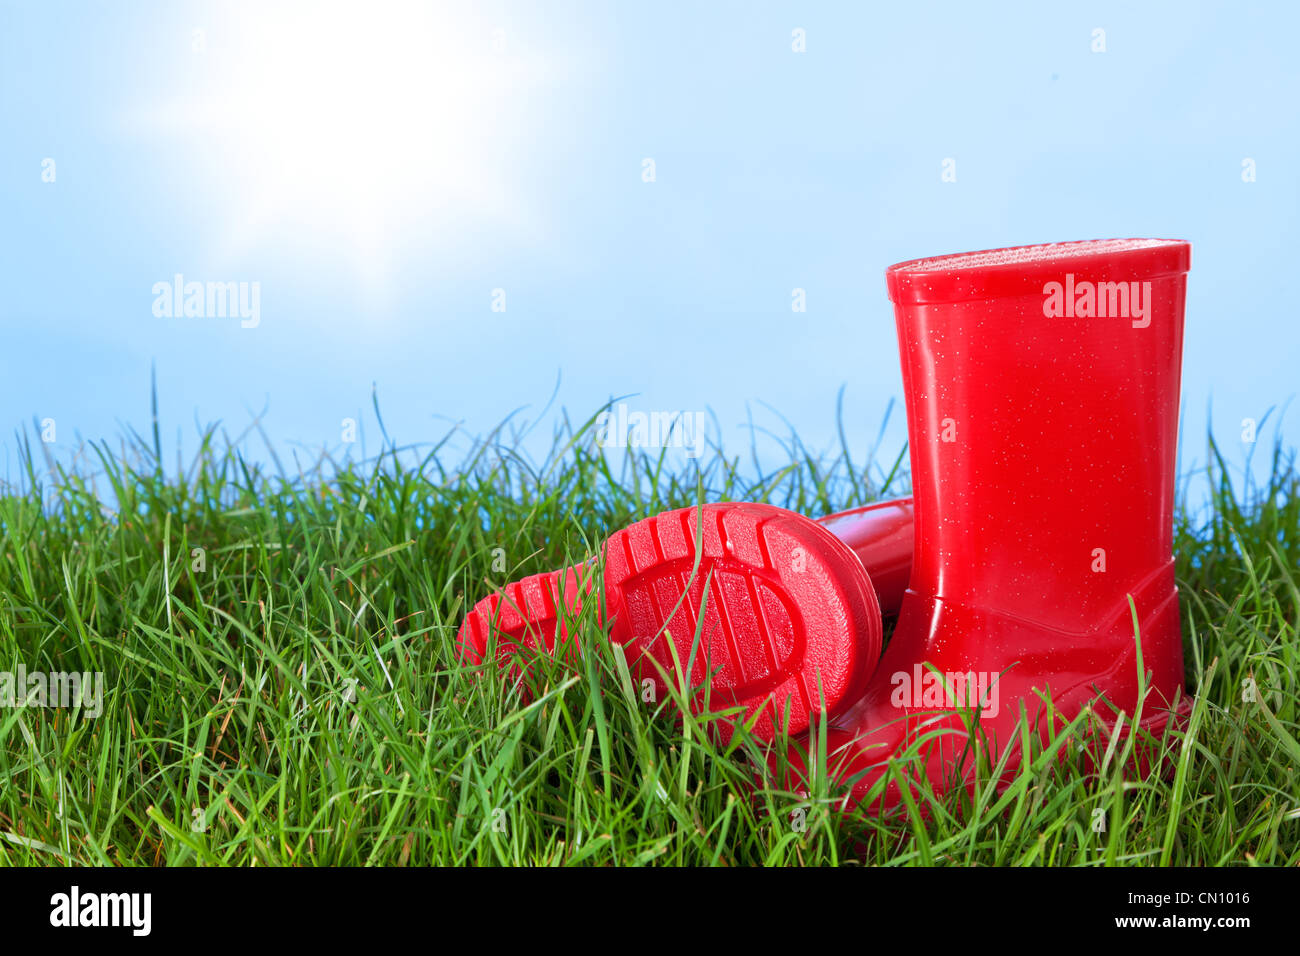 Photo of a childs wellington boots on grass outside on a sunny day - Stock Image